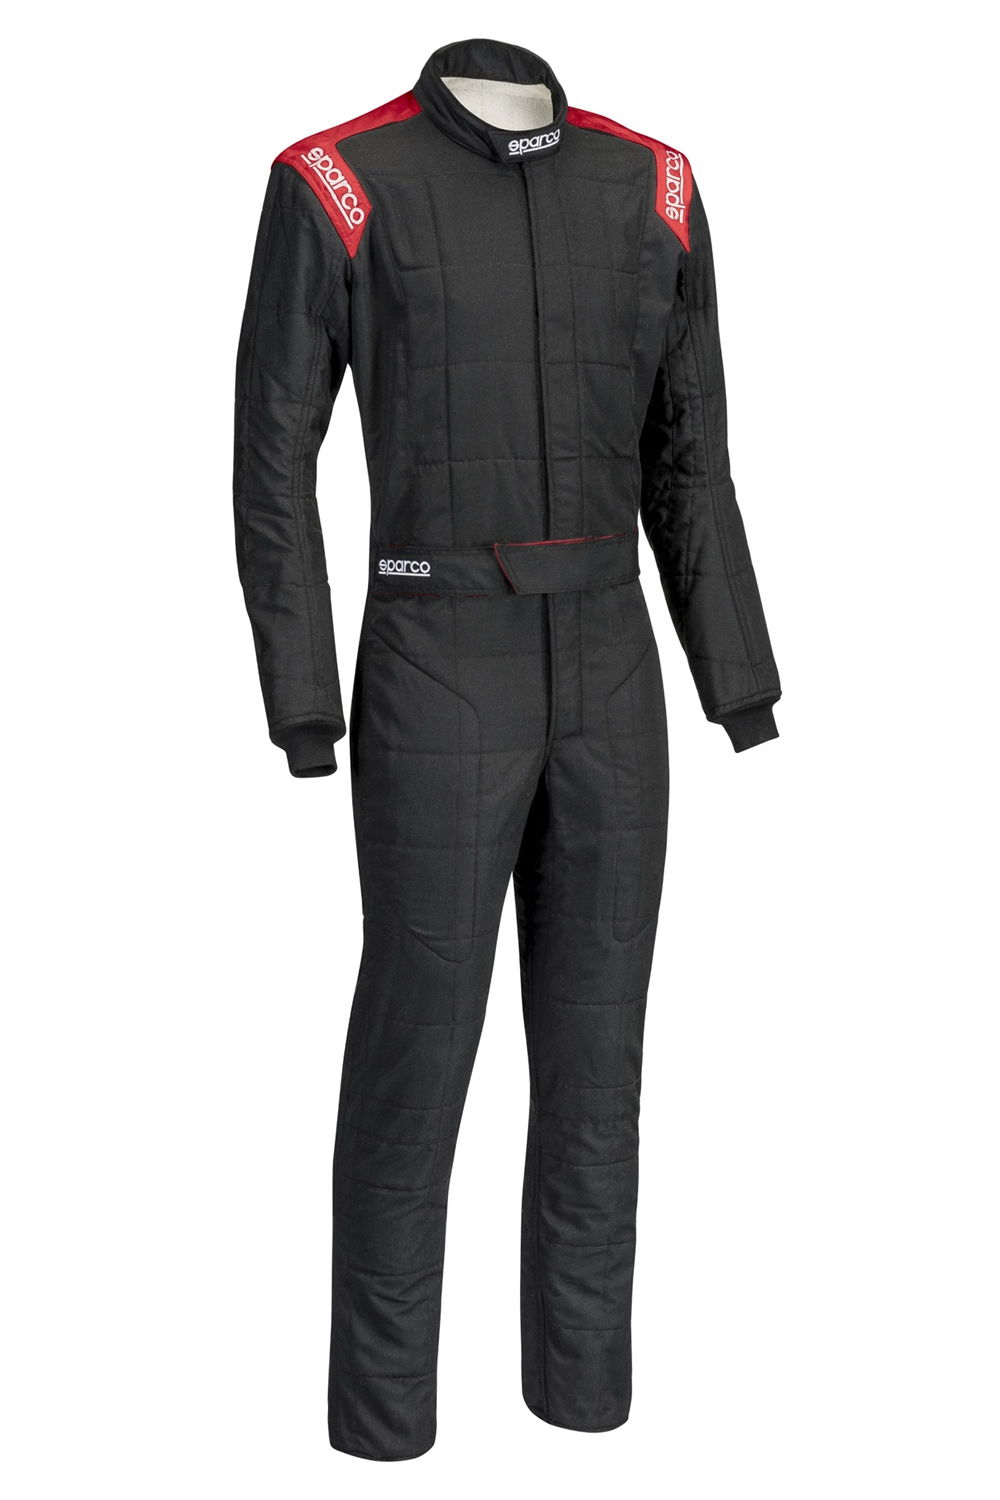 Sparco Suit Conquest Boot Cut Blk/Red Small / Medium